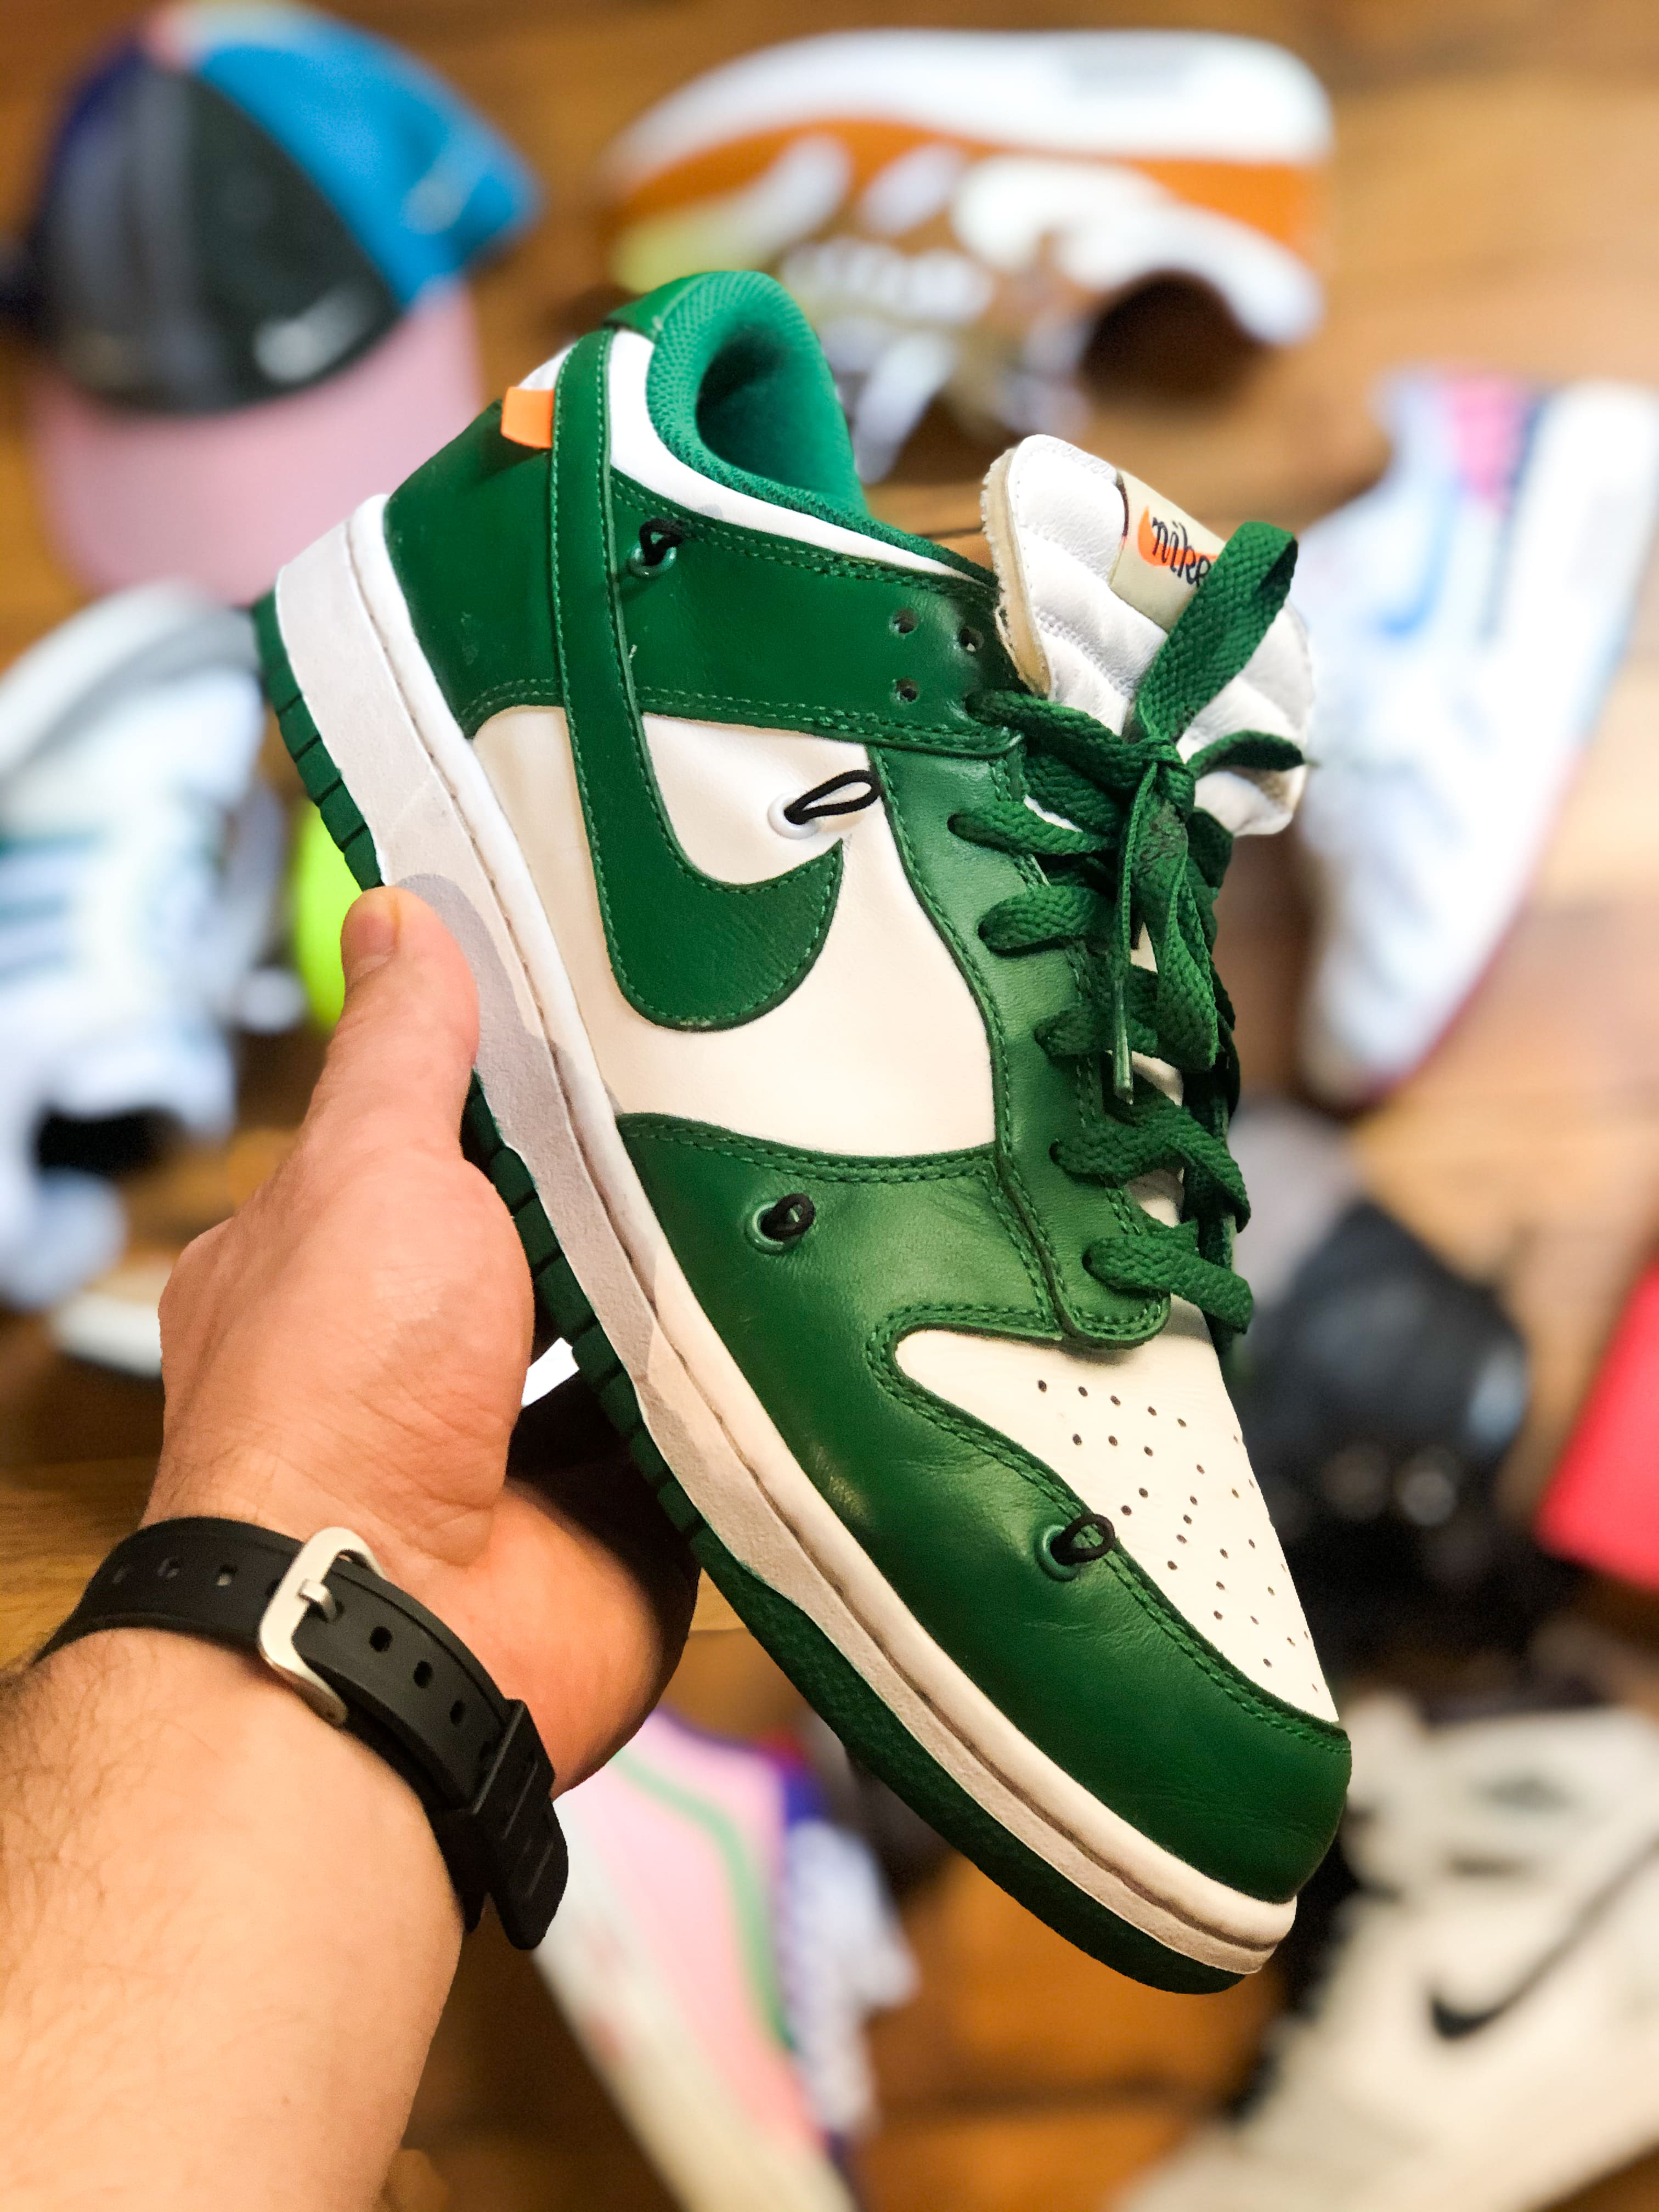 Off-White x Nike Dunk Low 'Pine Green' - 2019